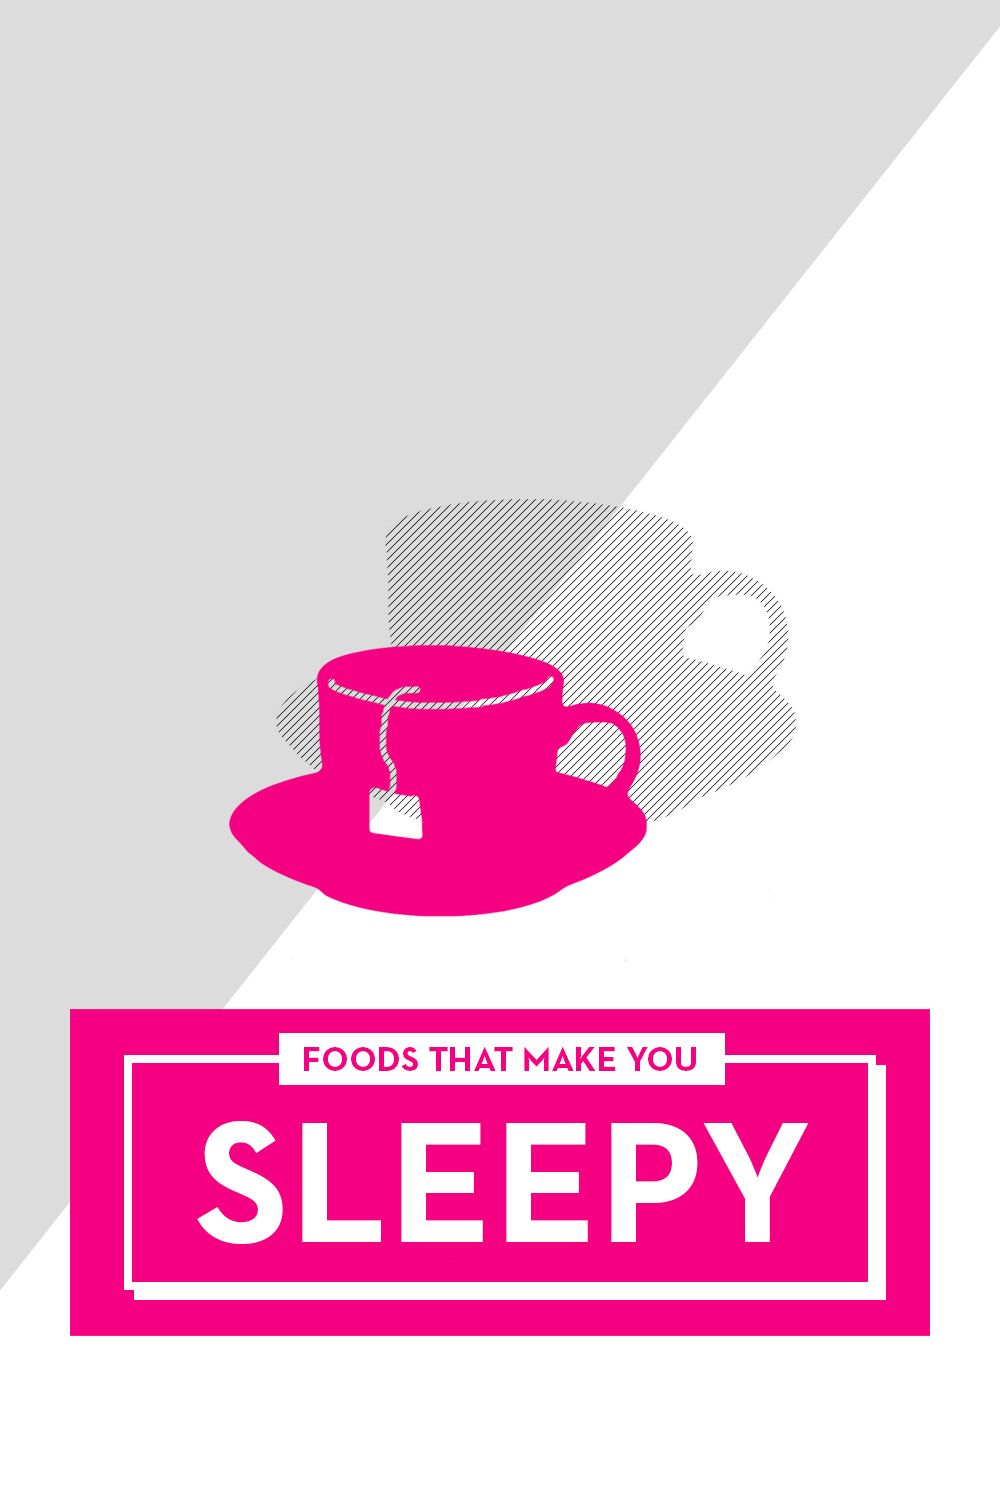 sleep-inducing foods